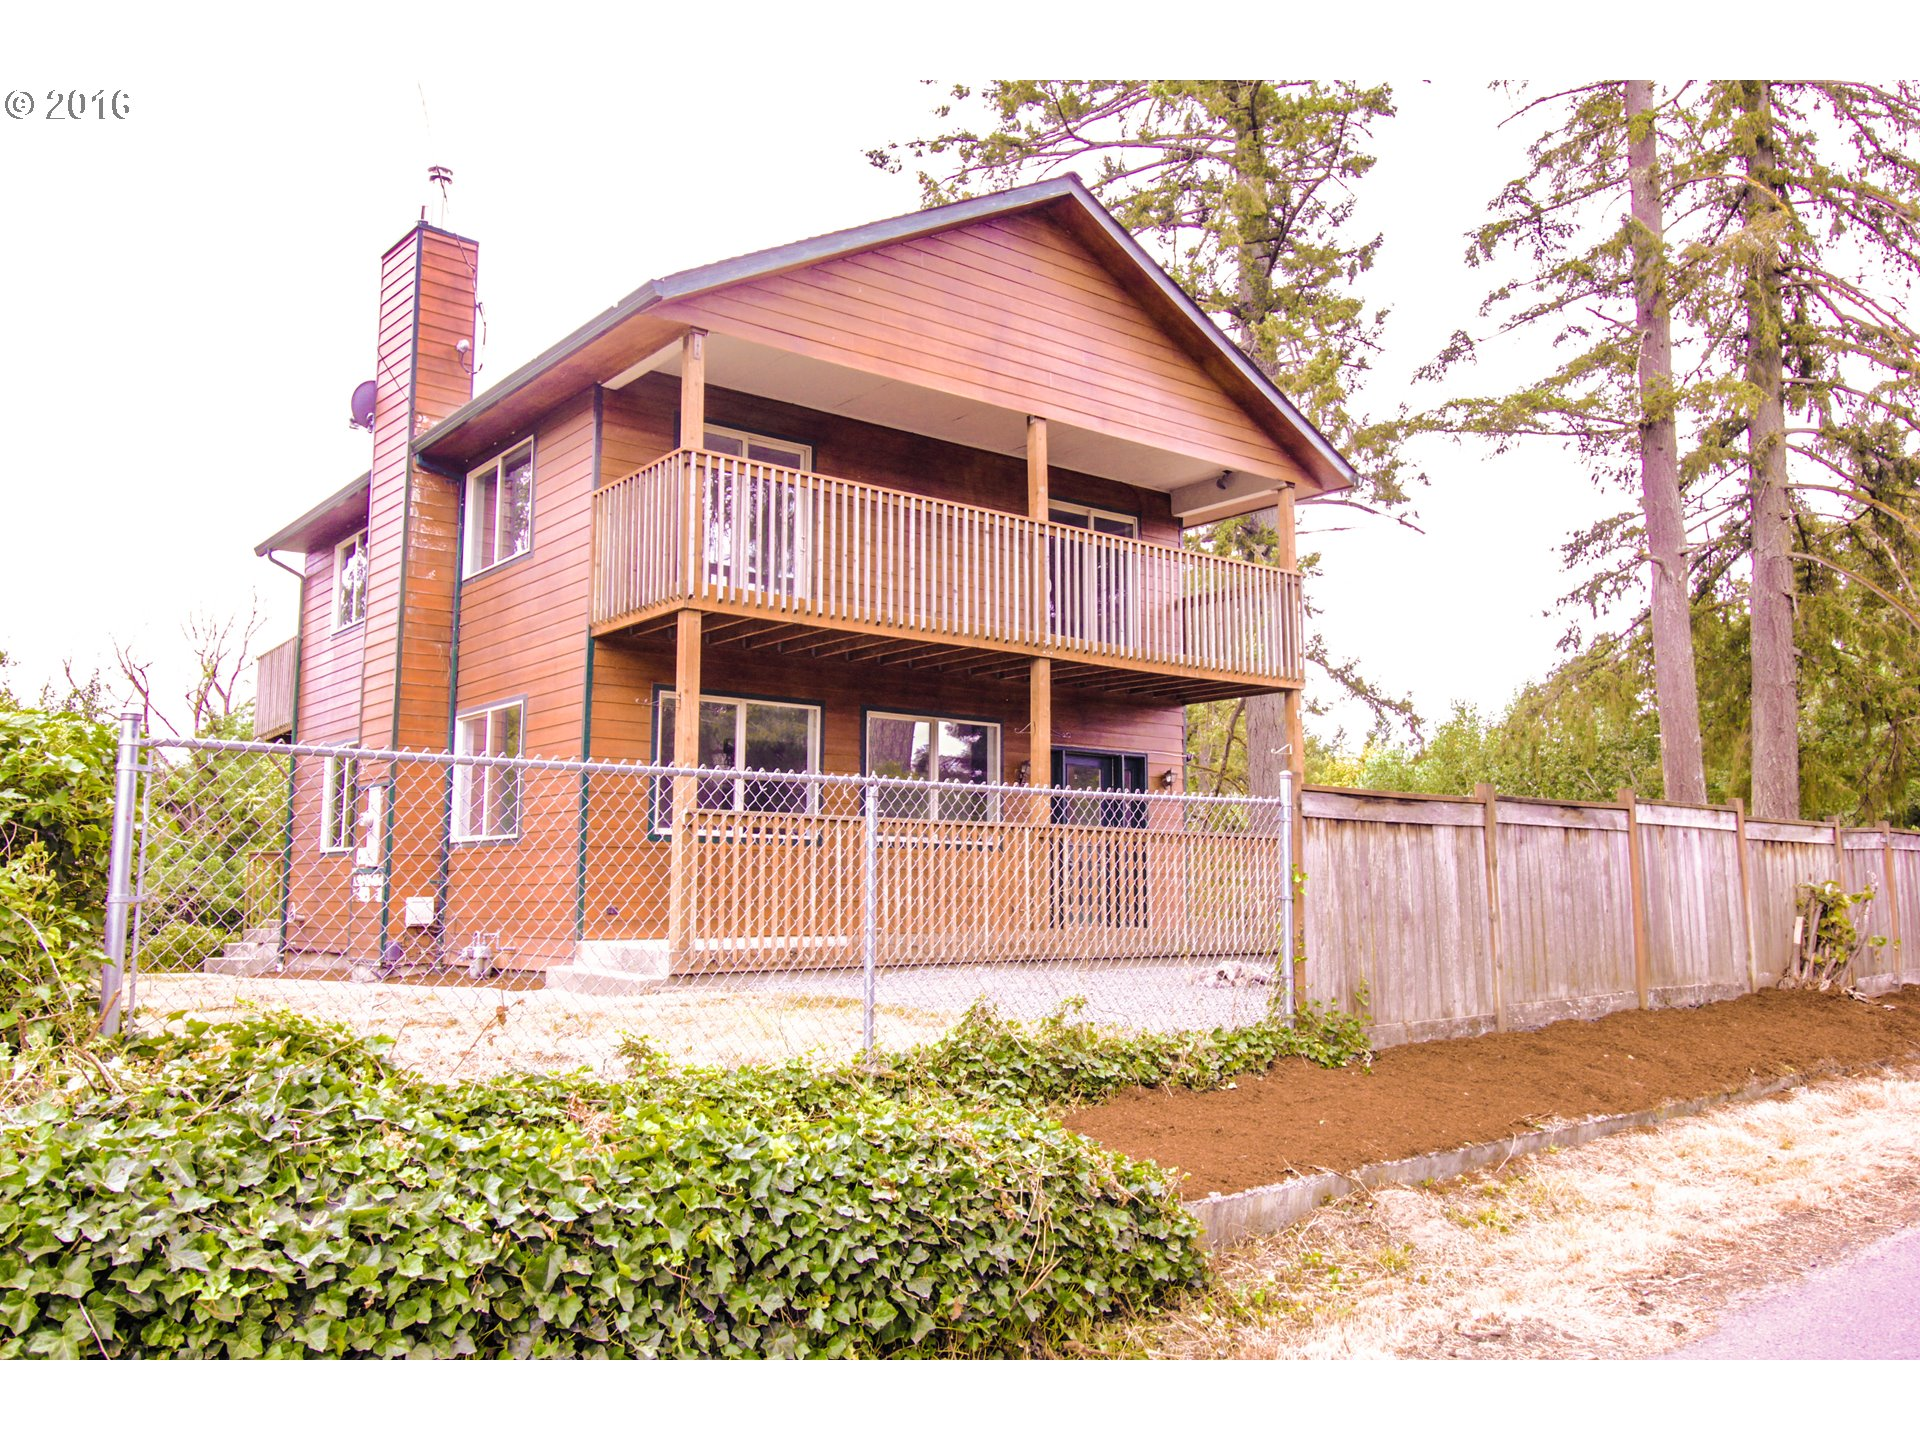 1560 sq. ft 3 bedrooms 2 bathrooms  House For Sale, Dundee, OR